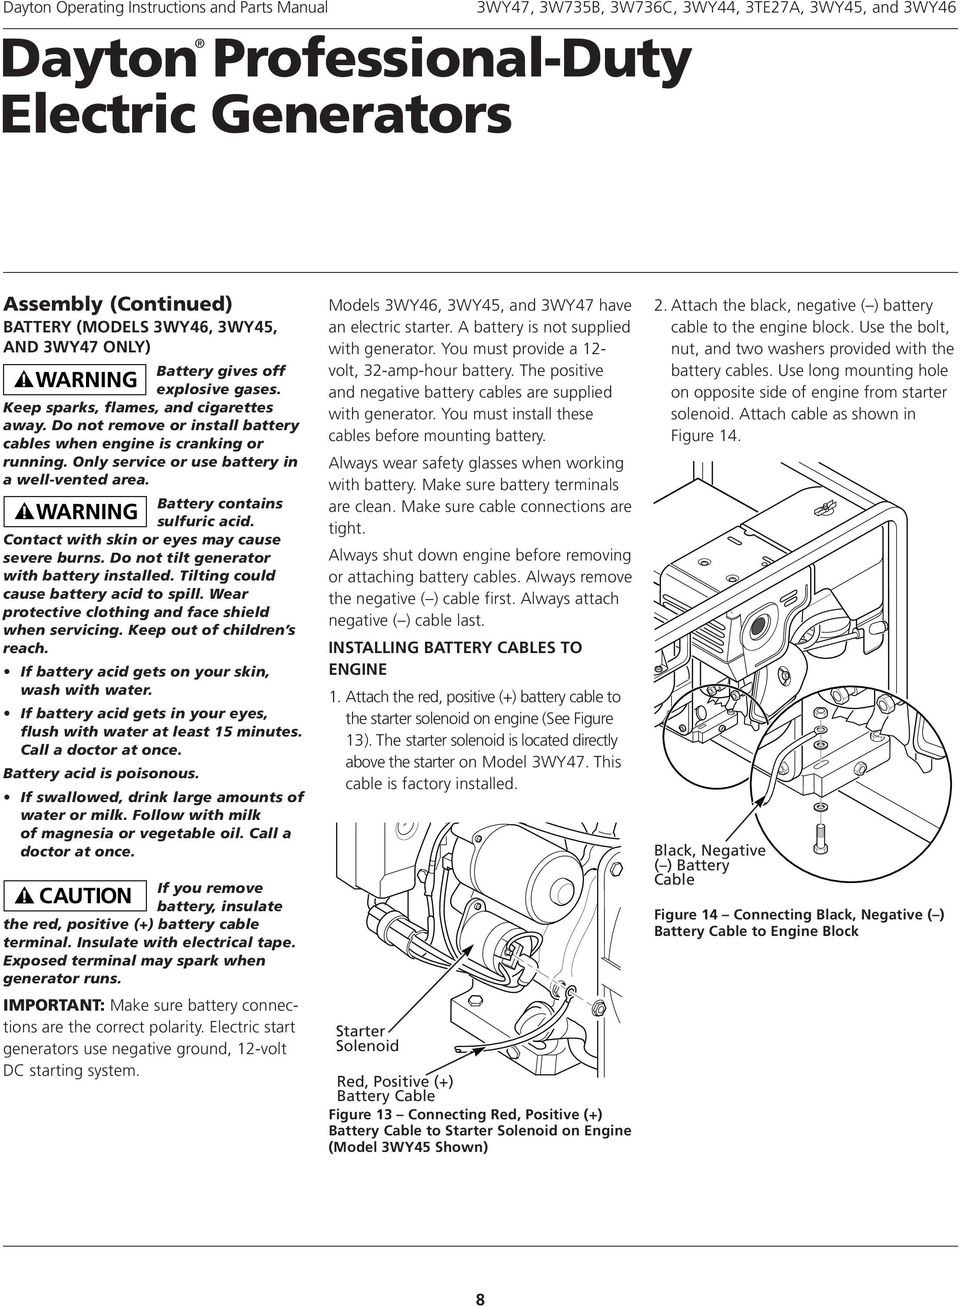 Dayton Professional Duty Electric Generators Pdf Battery Charger Wiring Diagram Contains Sulfuric Acid Contact With Skin Or Eyes May Cause Severe Burns Do